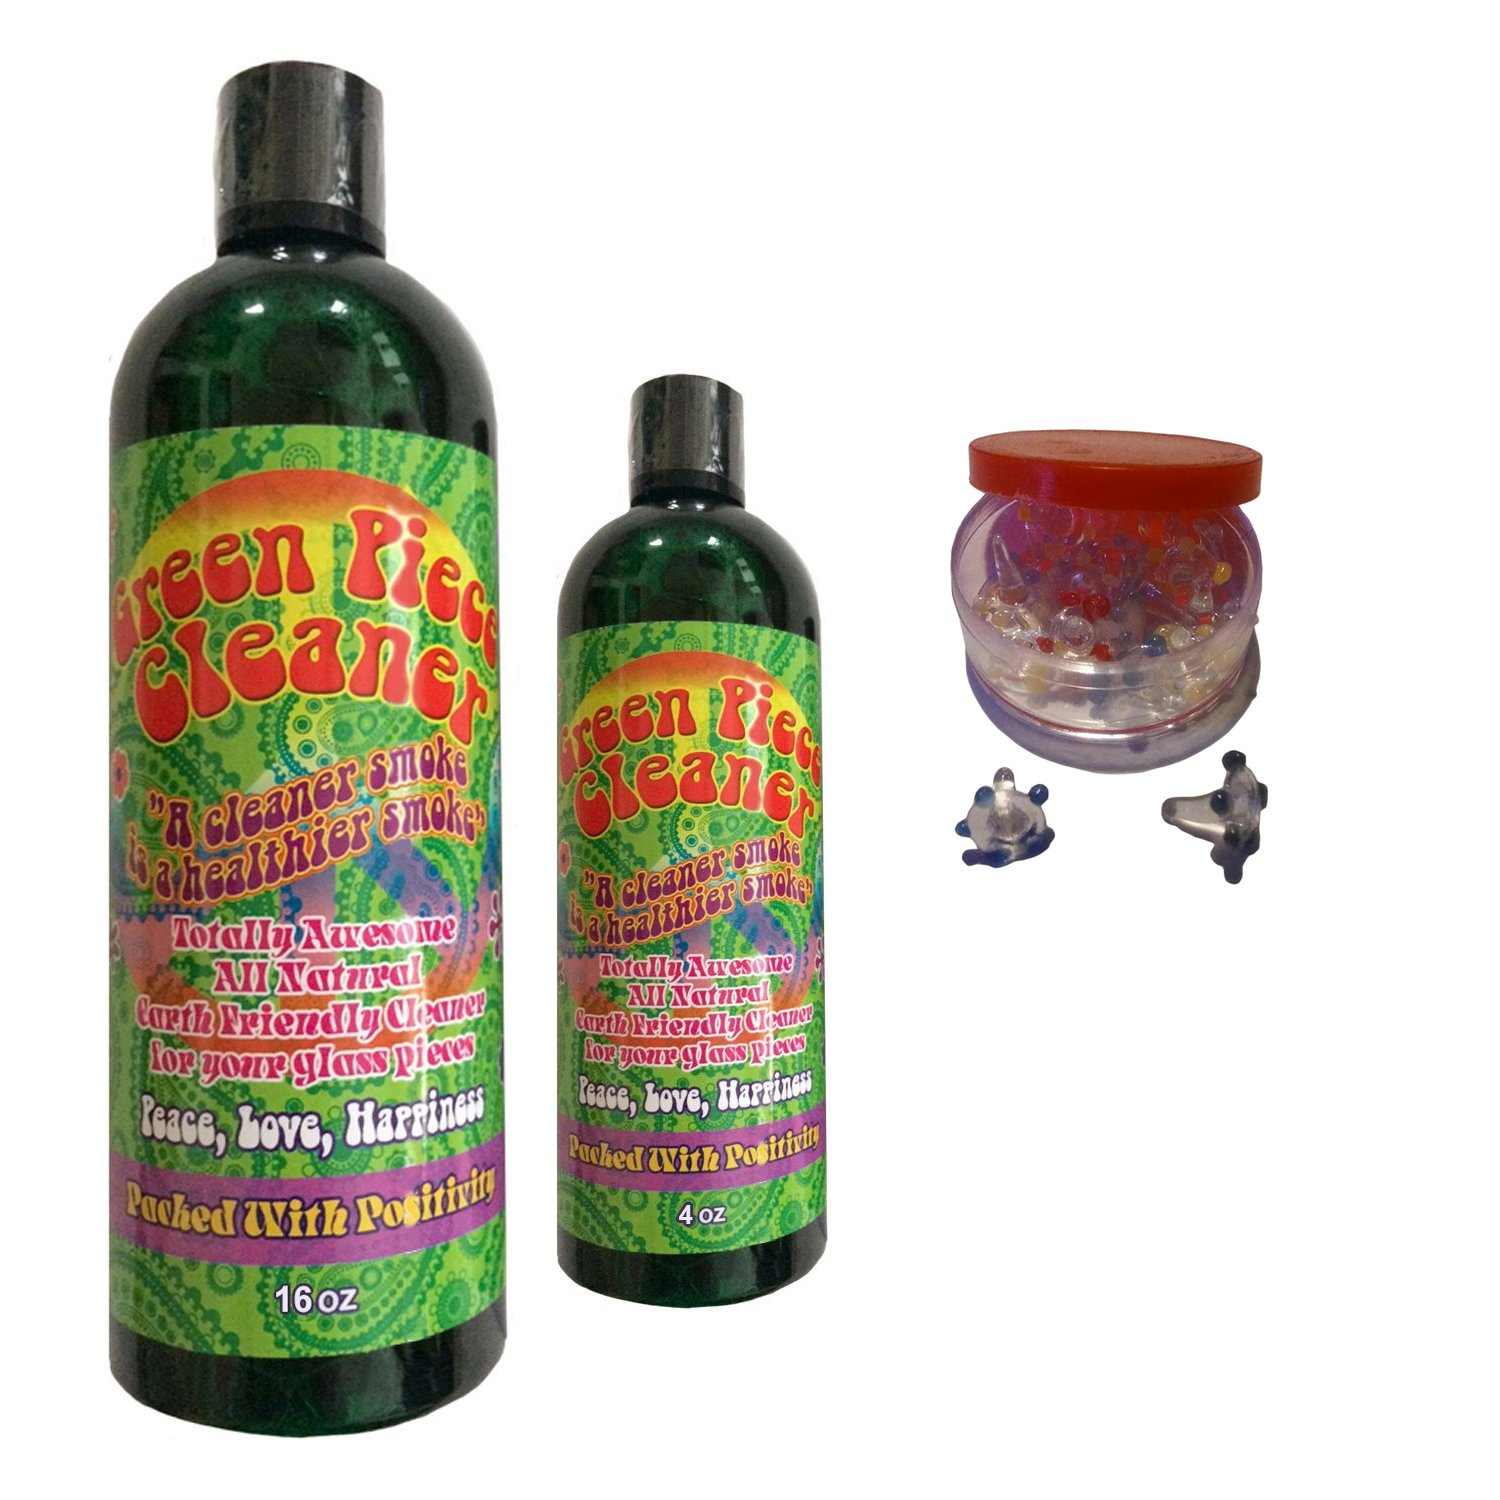 Green Piece Cleaner 16 oz - Free travel size and Free 20 pack of daisies! The All Natural Glass Cleaner, Metal and Ceramic Water Pipe/Bong/Bubbler - Earth Friendly Resin and Tar Remover